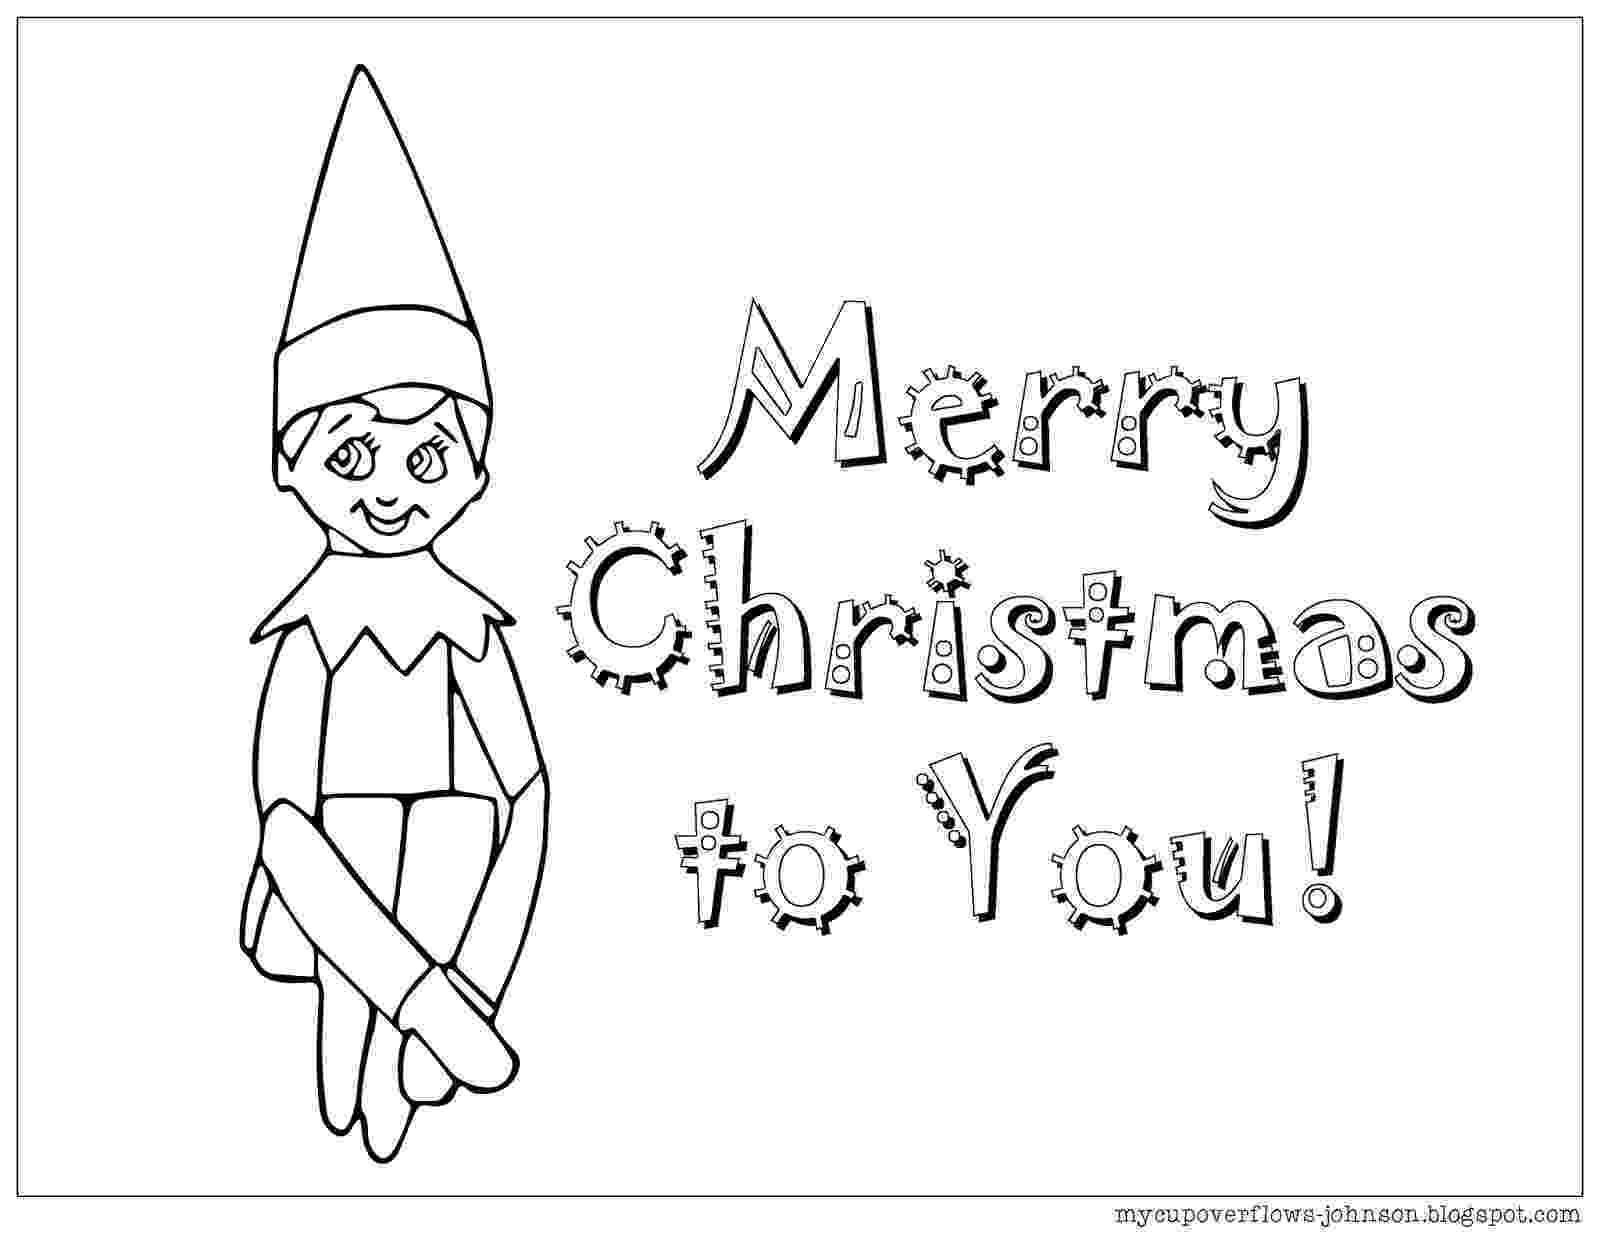 elf on shelf coloring pages elf coloring page christmas coloring pages dog coloring coloring pages elf shelf on